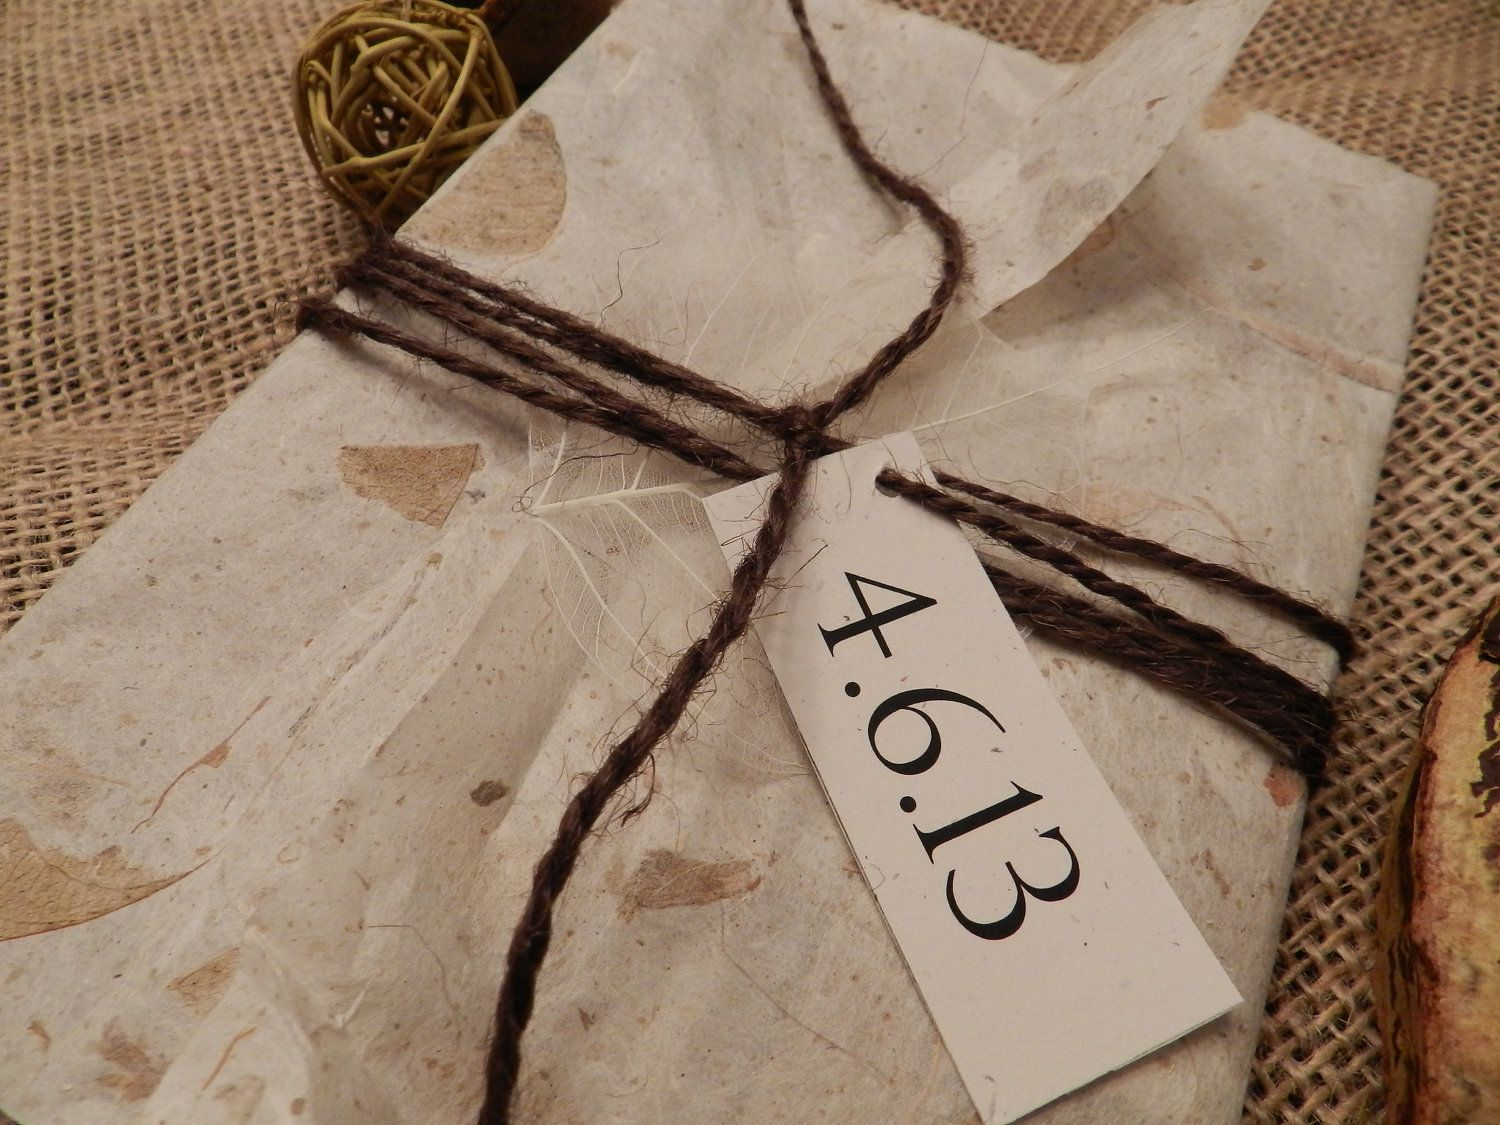 Eco friendly recycled paper wedding invitation wrapped in natural eco friendly recycled paper wedding invitation wrapped in natural leaf paper monicamarmolfo Choice Image